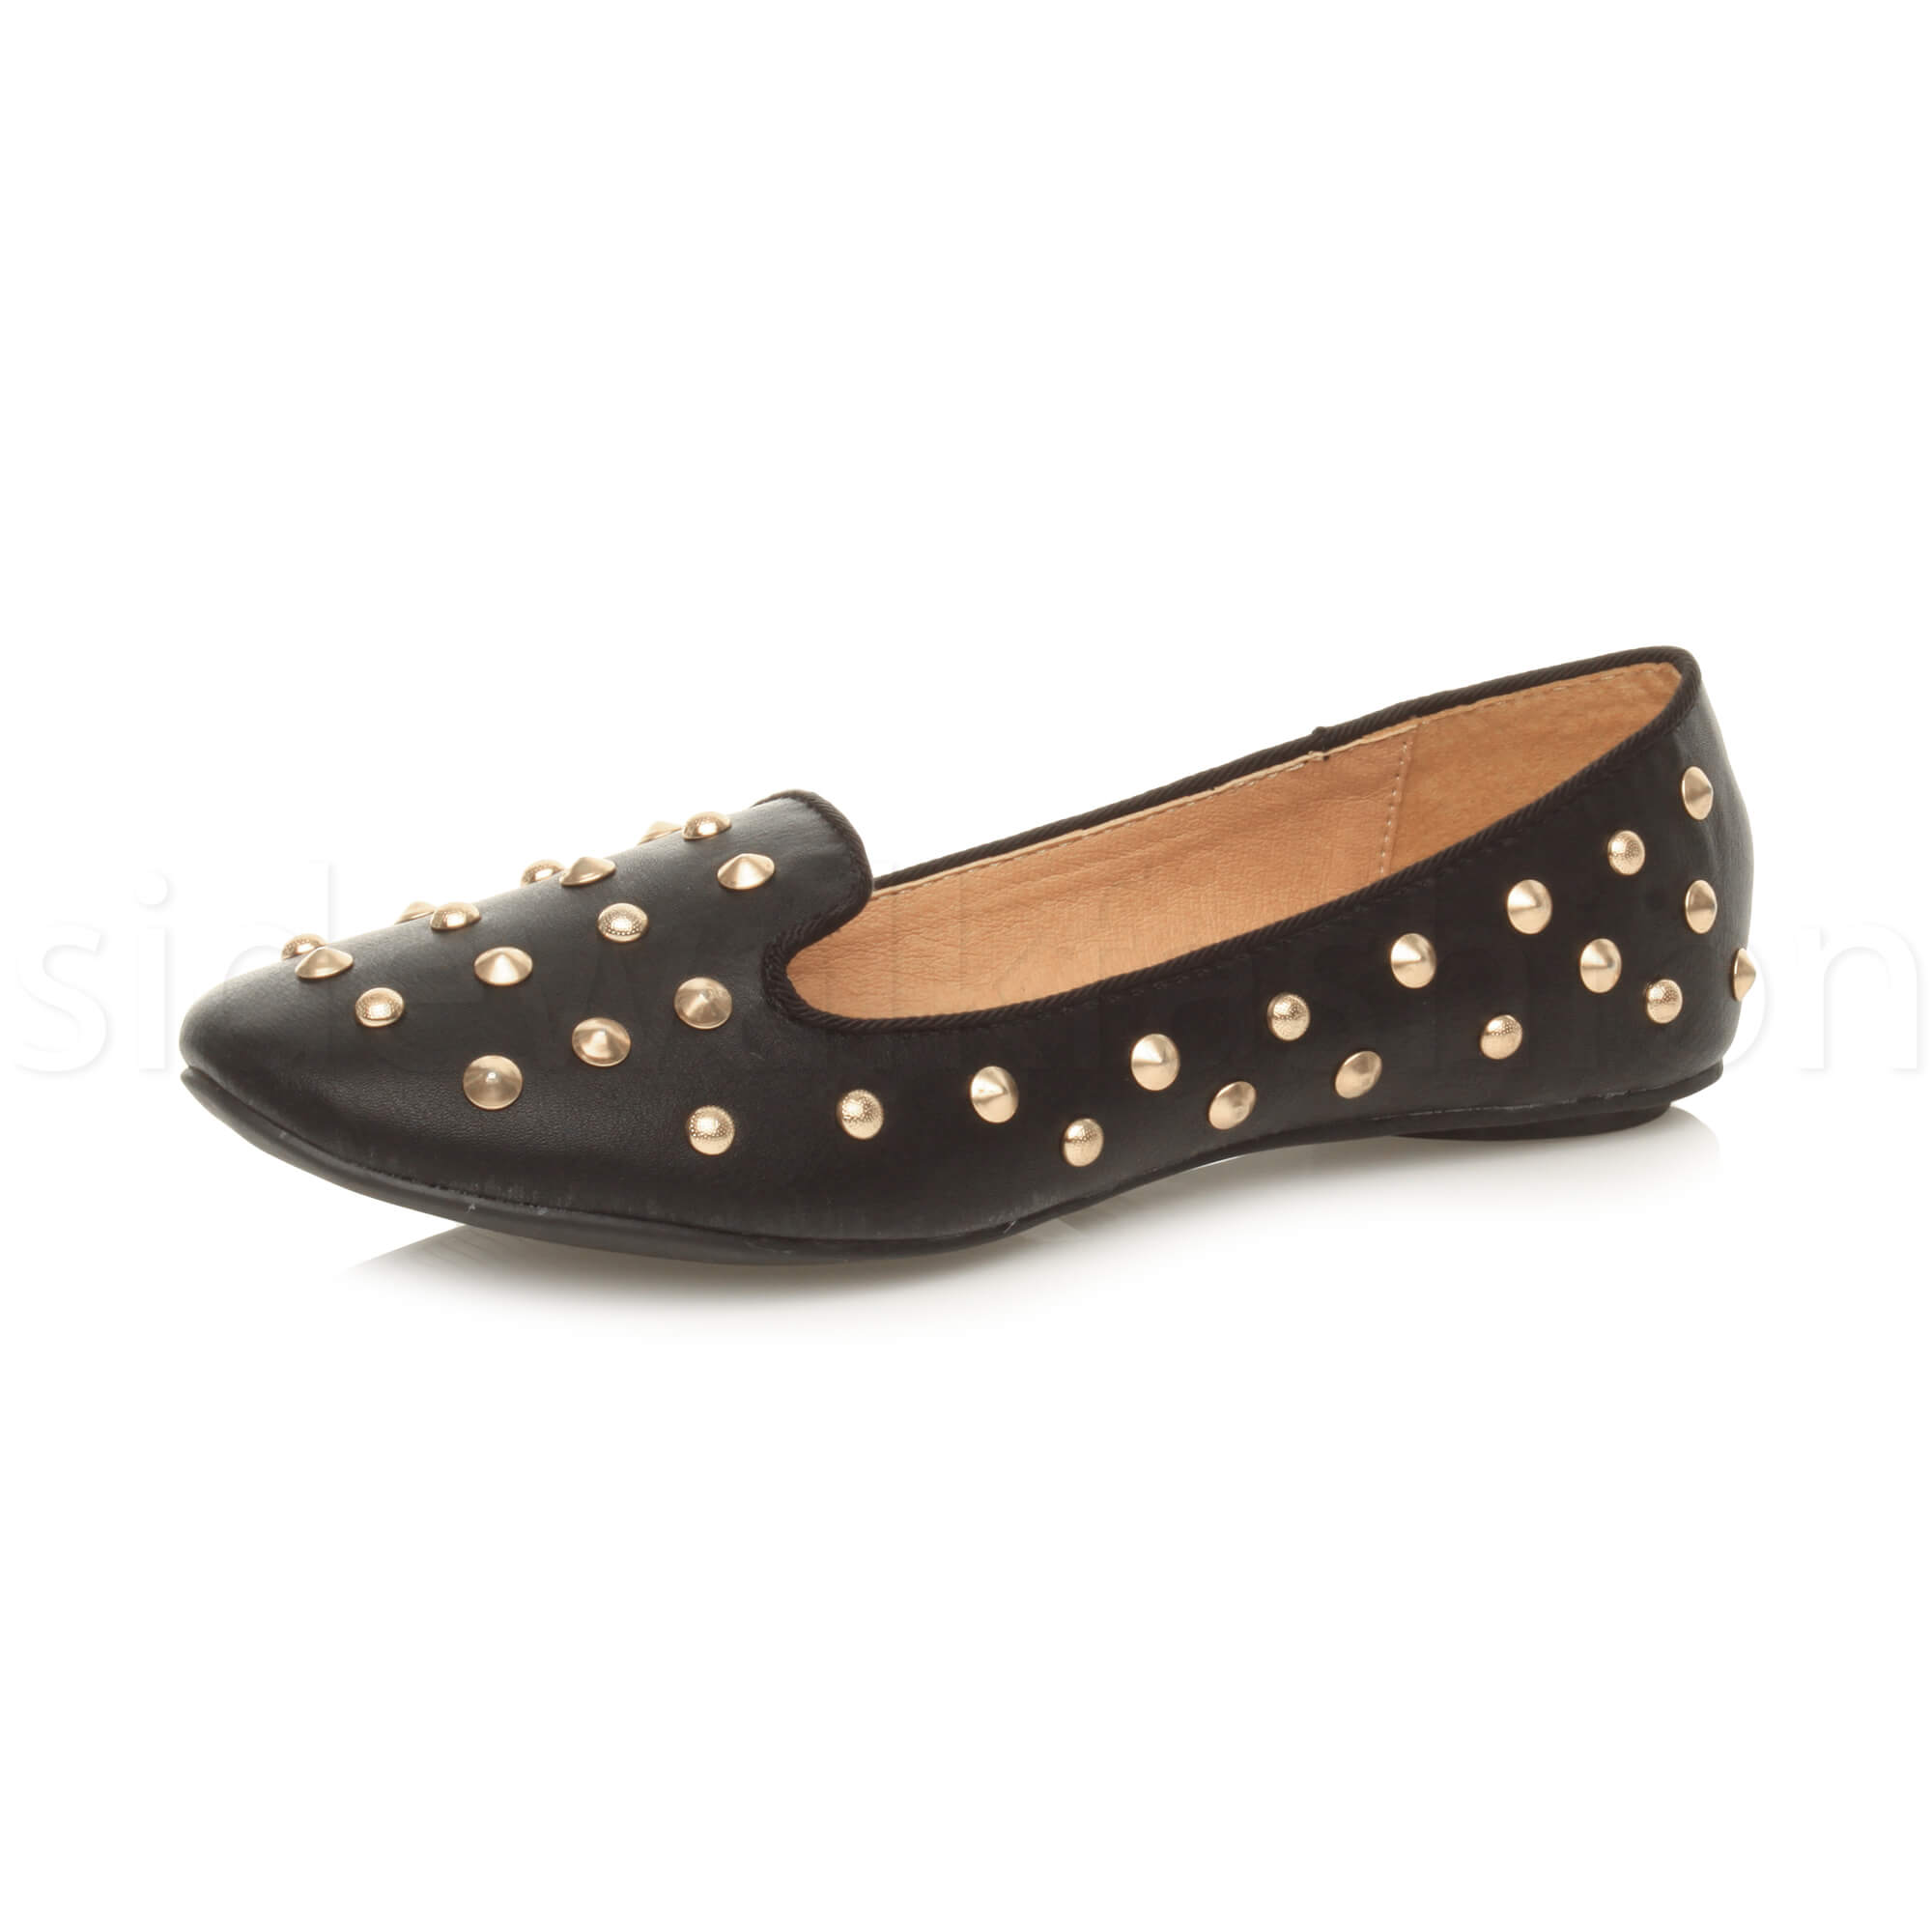 bb886ba8bbd7 Womens ladies studded punk goth loafers ballet flats slip on dolly shoes  size